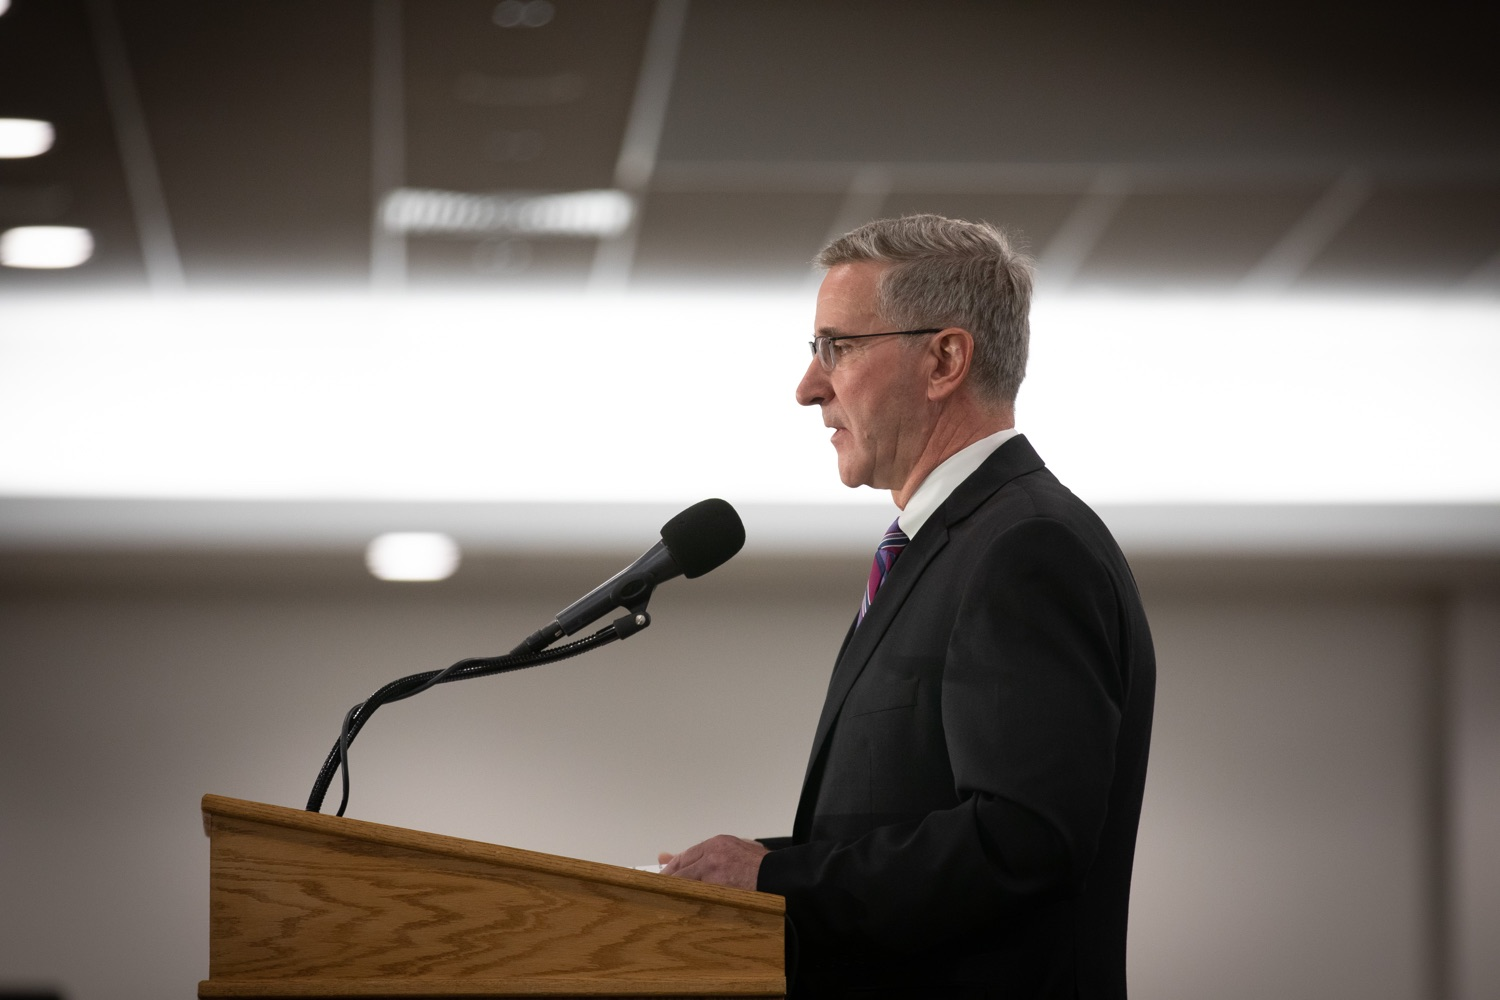 "<a href=""https://filesource.wostreaming.net/commonwealthofpa/photo/17650_agric_public_officials_day_dz_015.jpg"" target=""_blank"">⇣ Download Photo<br></a>Agriculture Secretary Russell Redding speaks at Public Officials Day.  Addressing nearly 800 public officials at the Pennsylvania Farm Show today, Agriculture Secretary Russell Redding announced the opening of the last grant program made possible by the 2019 PA Farm Bill. The $1 million Farm Vitality Grant Program aims to enhance the long-term health and vitality of Pennsylvanias family farms. Harrisburg, PA  January 08, 2020"